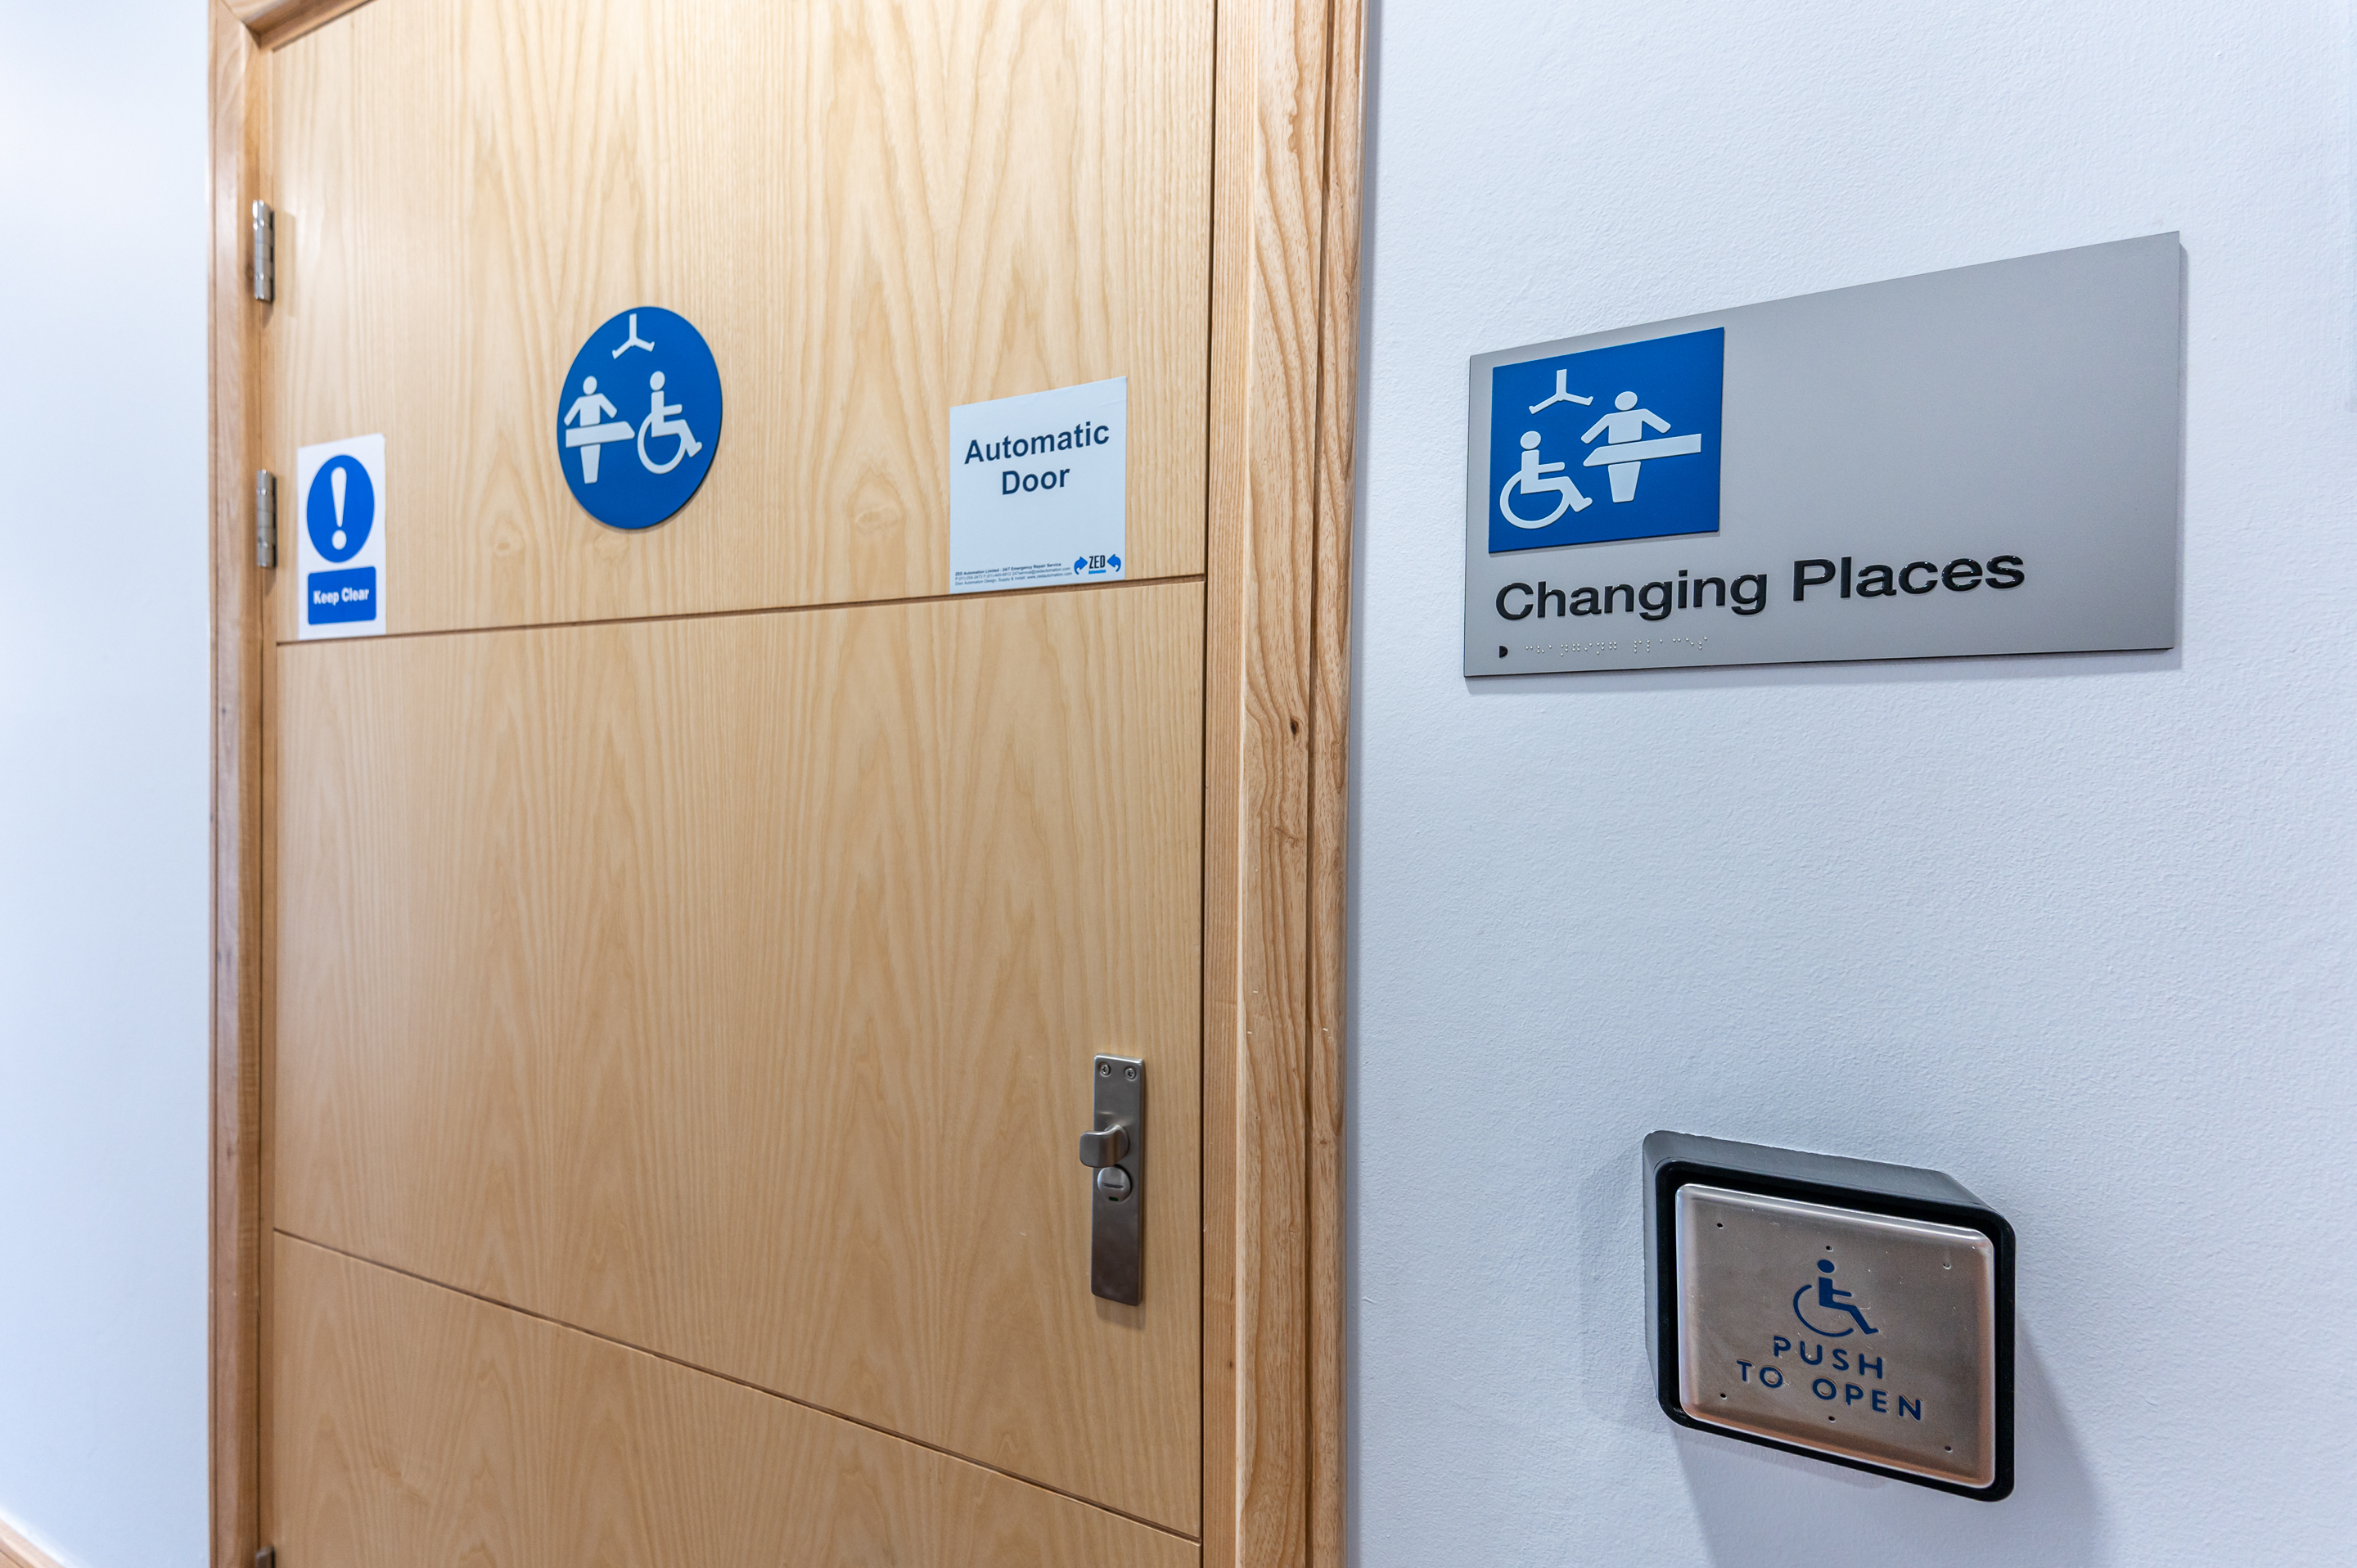 Entrance to County Hall Changing Places toilet facility